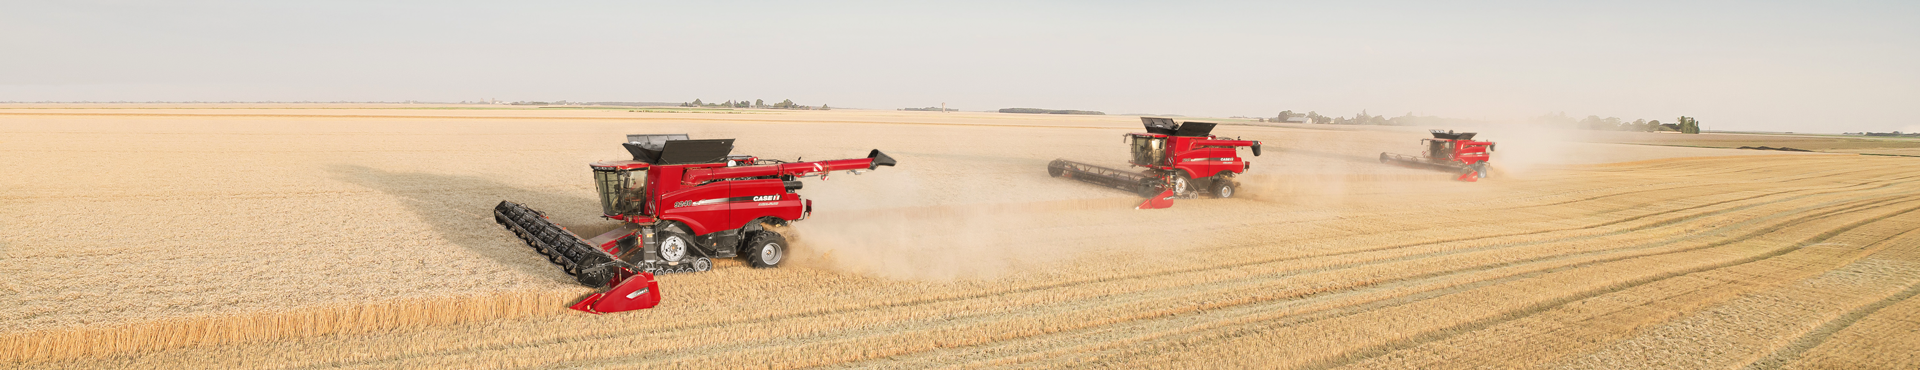 Case-IH-Axial-Flow-240-page